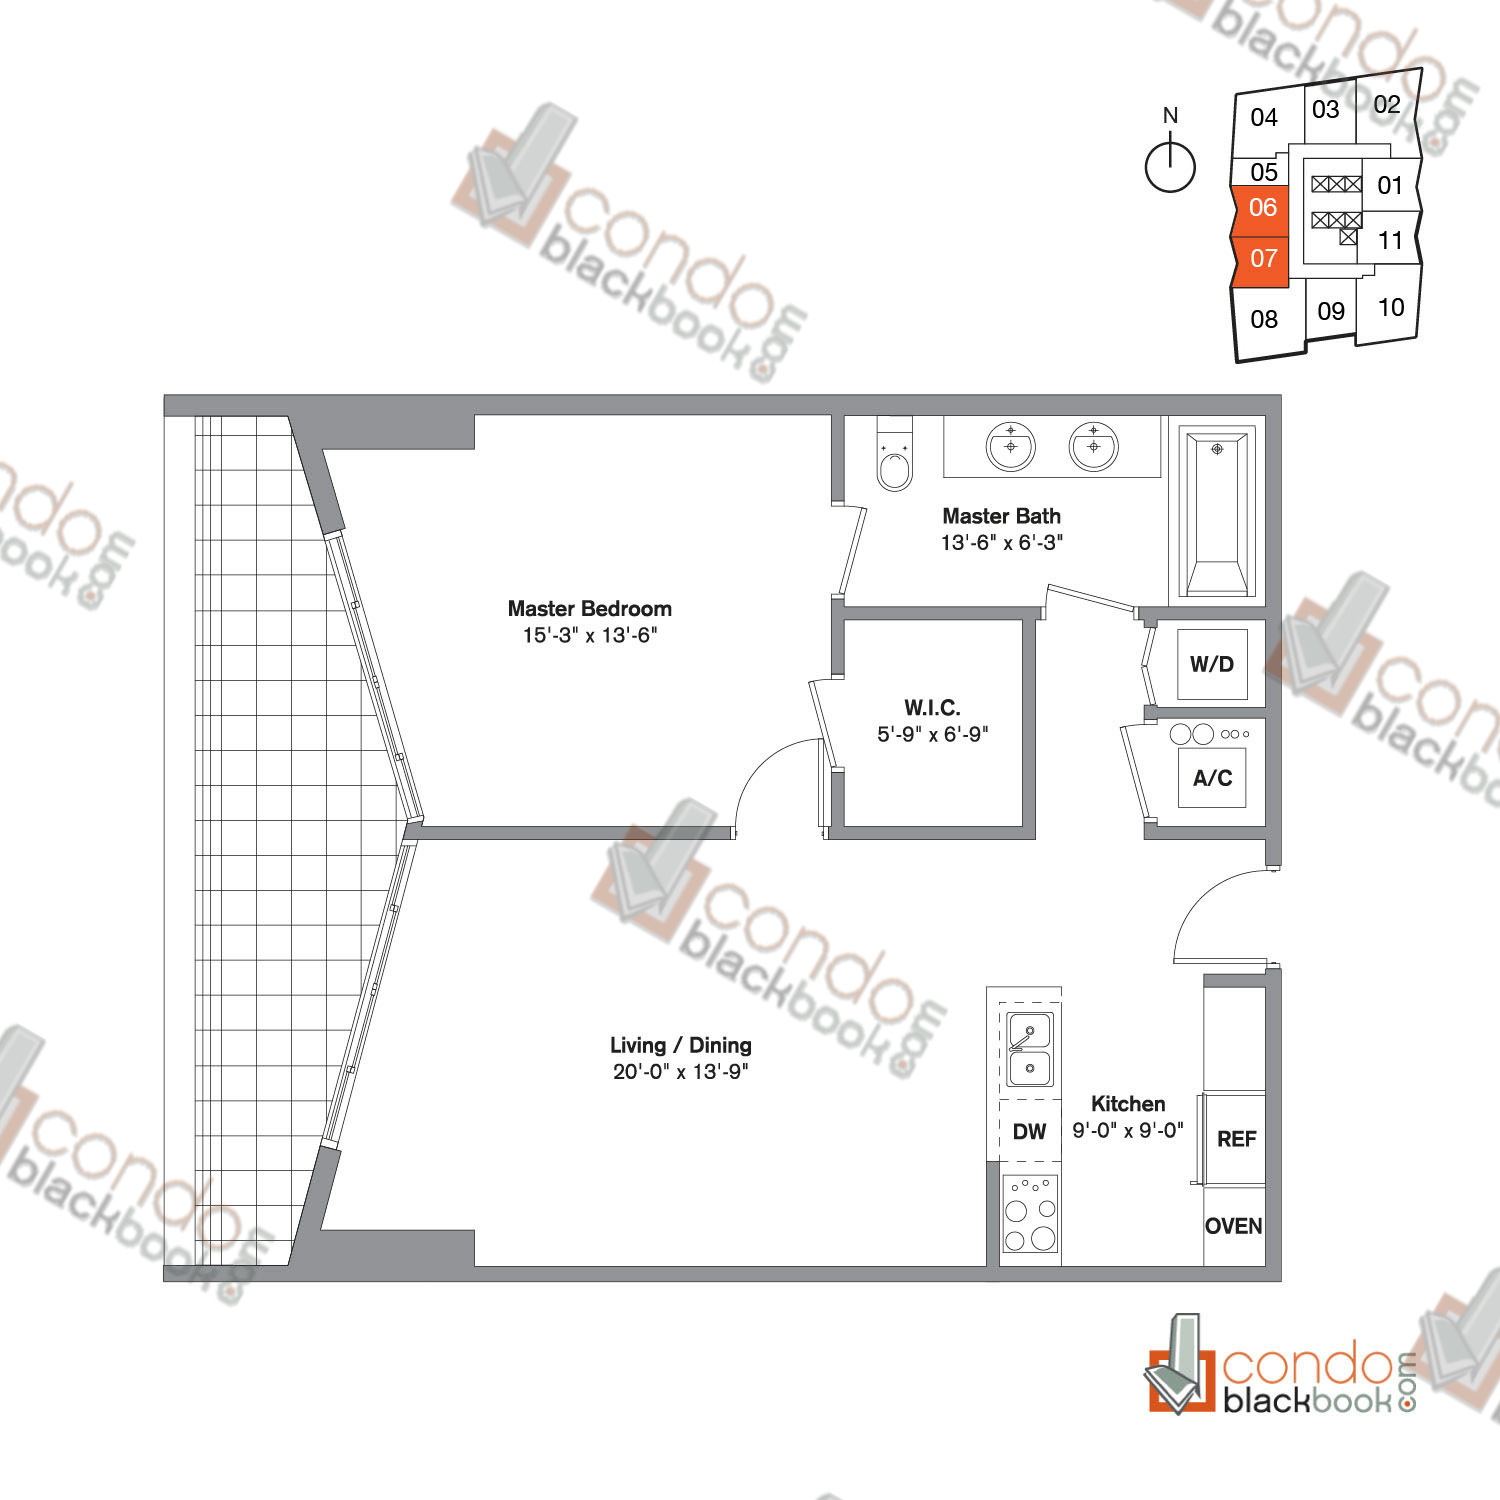 Floor plan for Icon Brickell Viceroy Brickell Miami, model Unit H, H-rev, line 06, 07, 1/1 bedrooms, 842 sq ft